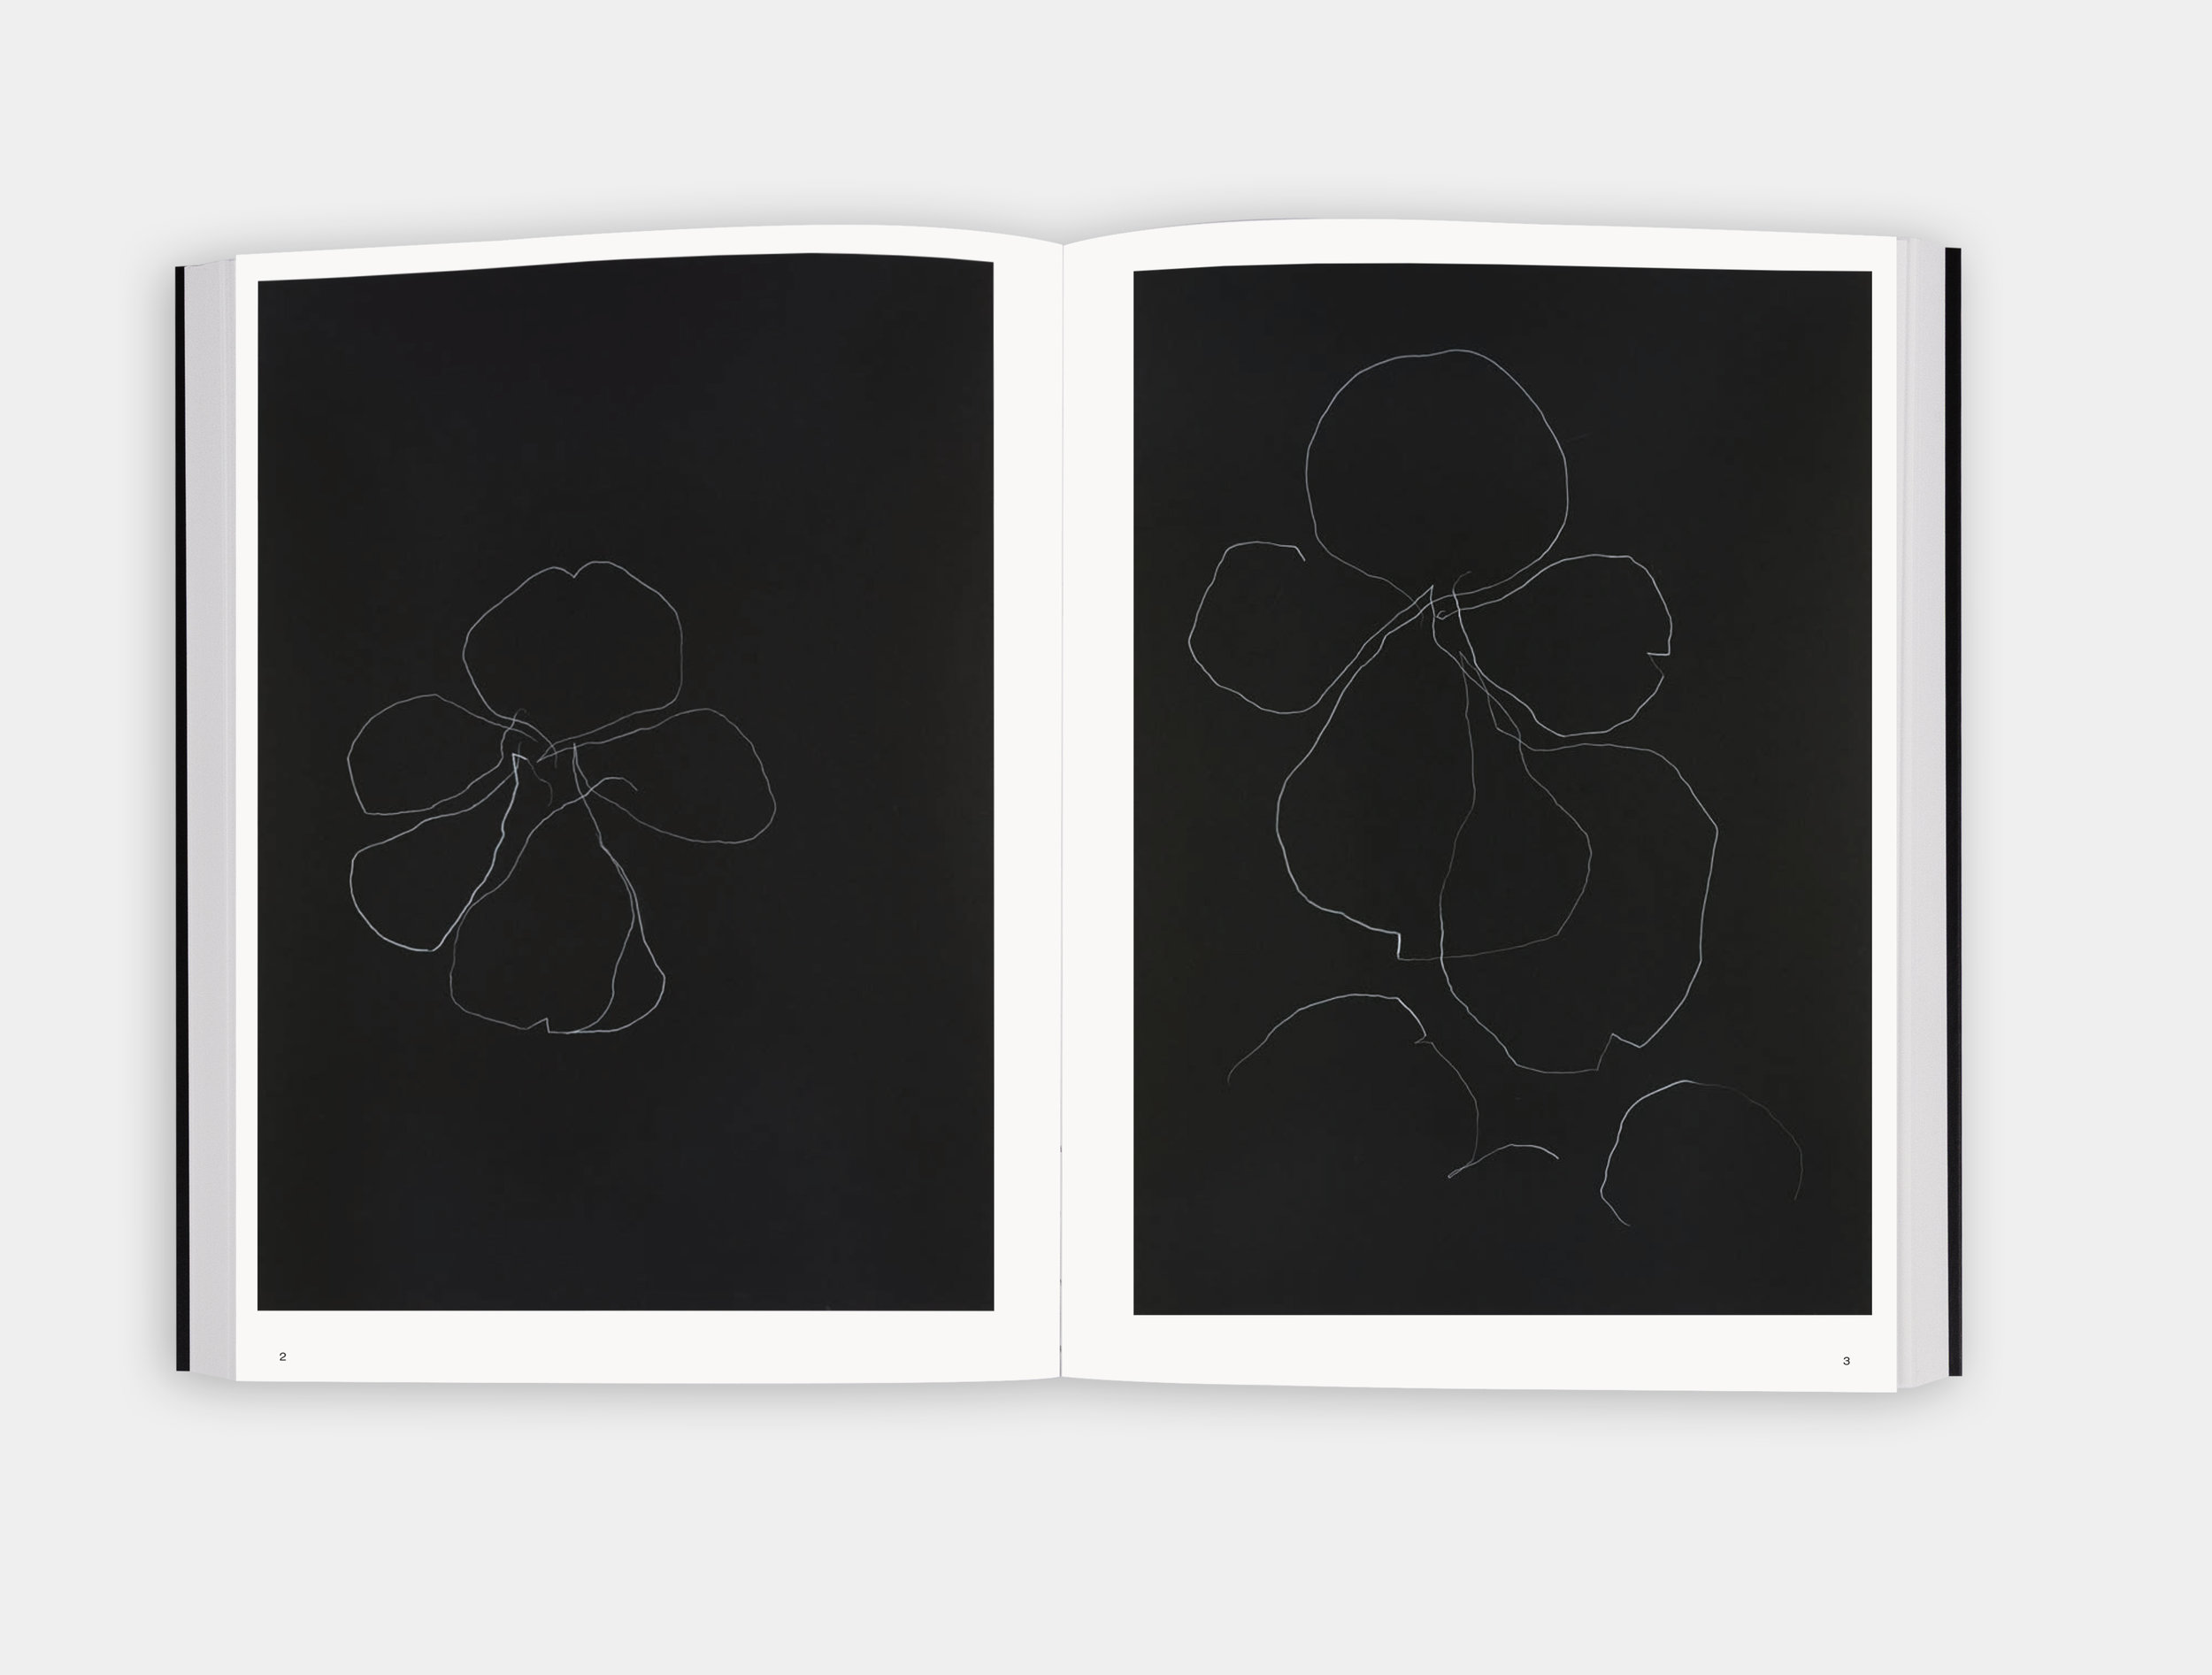 Night Orchids (2016), book by Brian Clarke, published by HENI